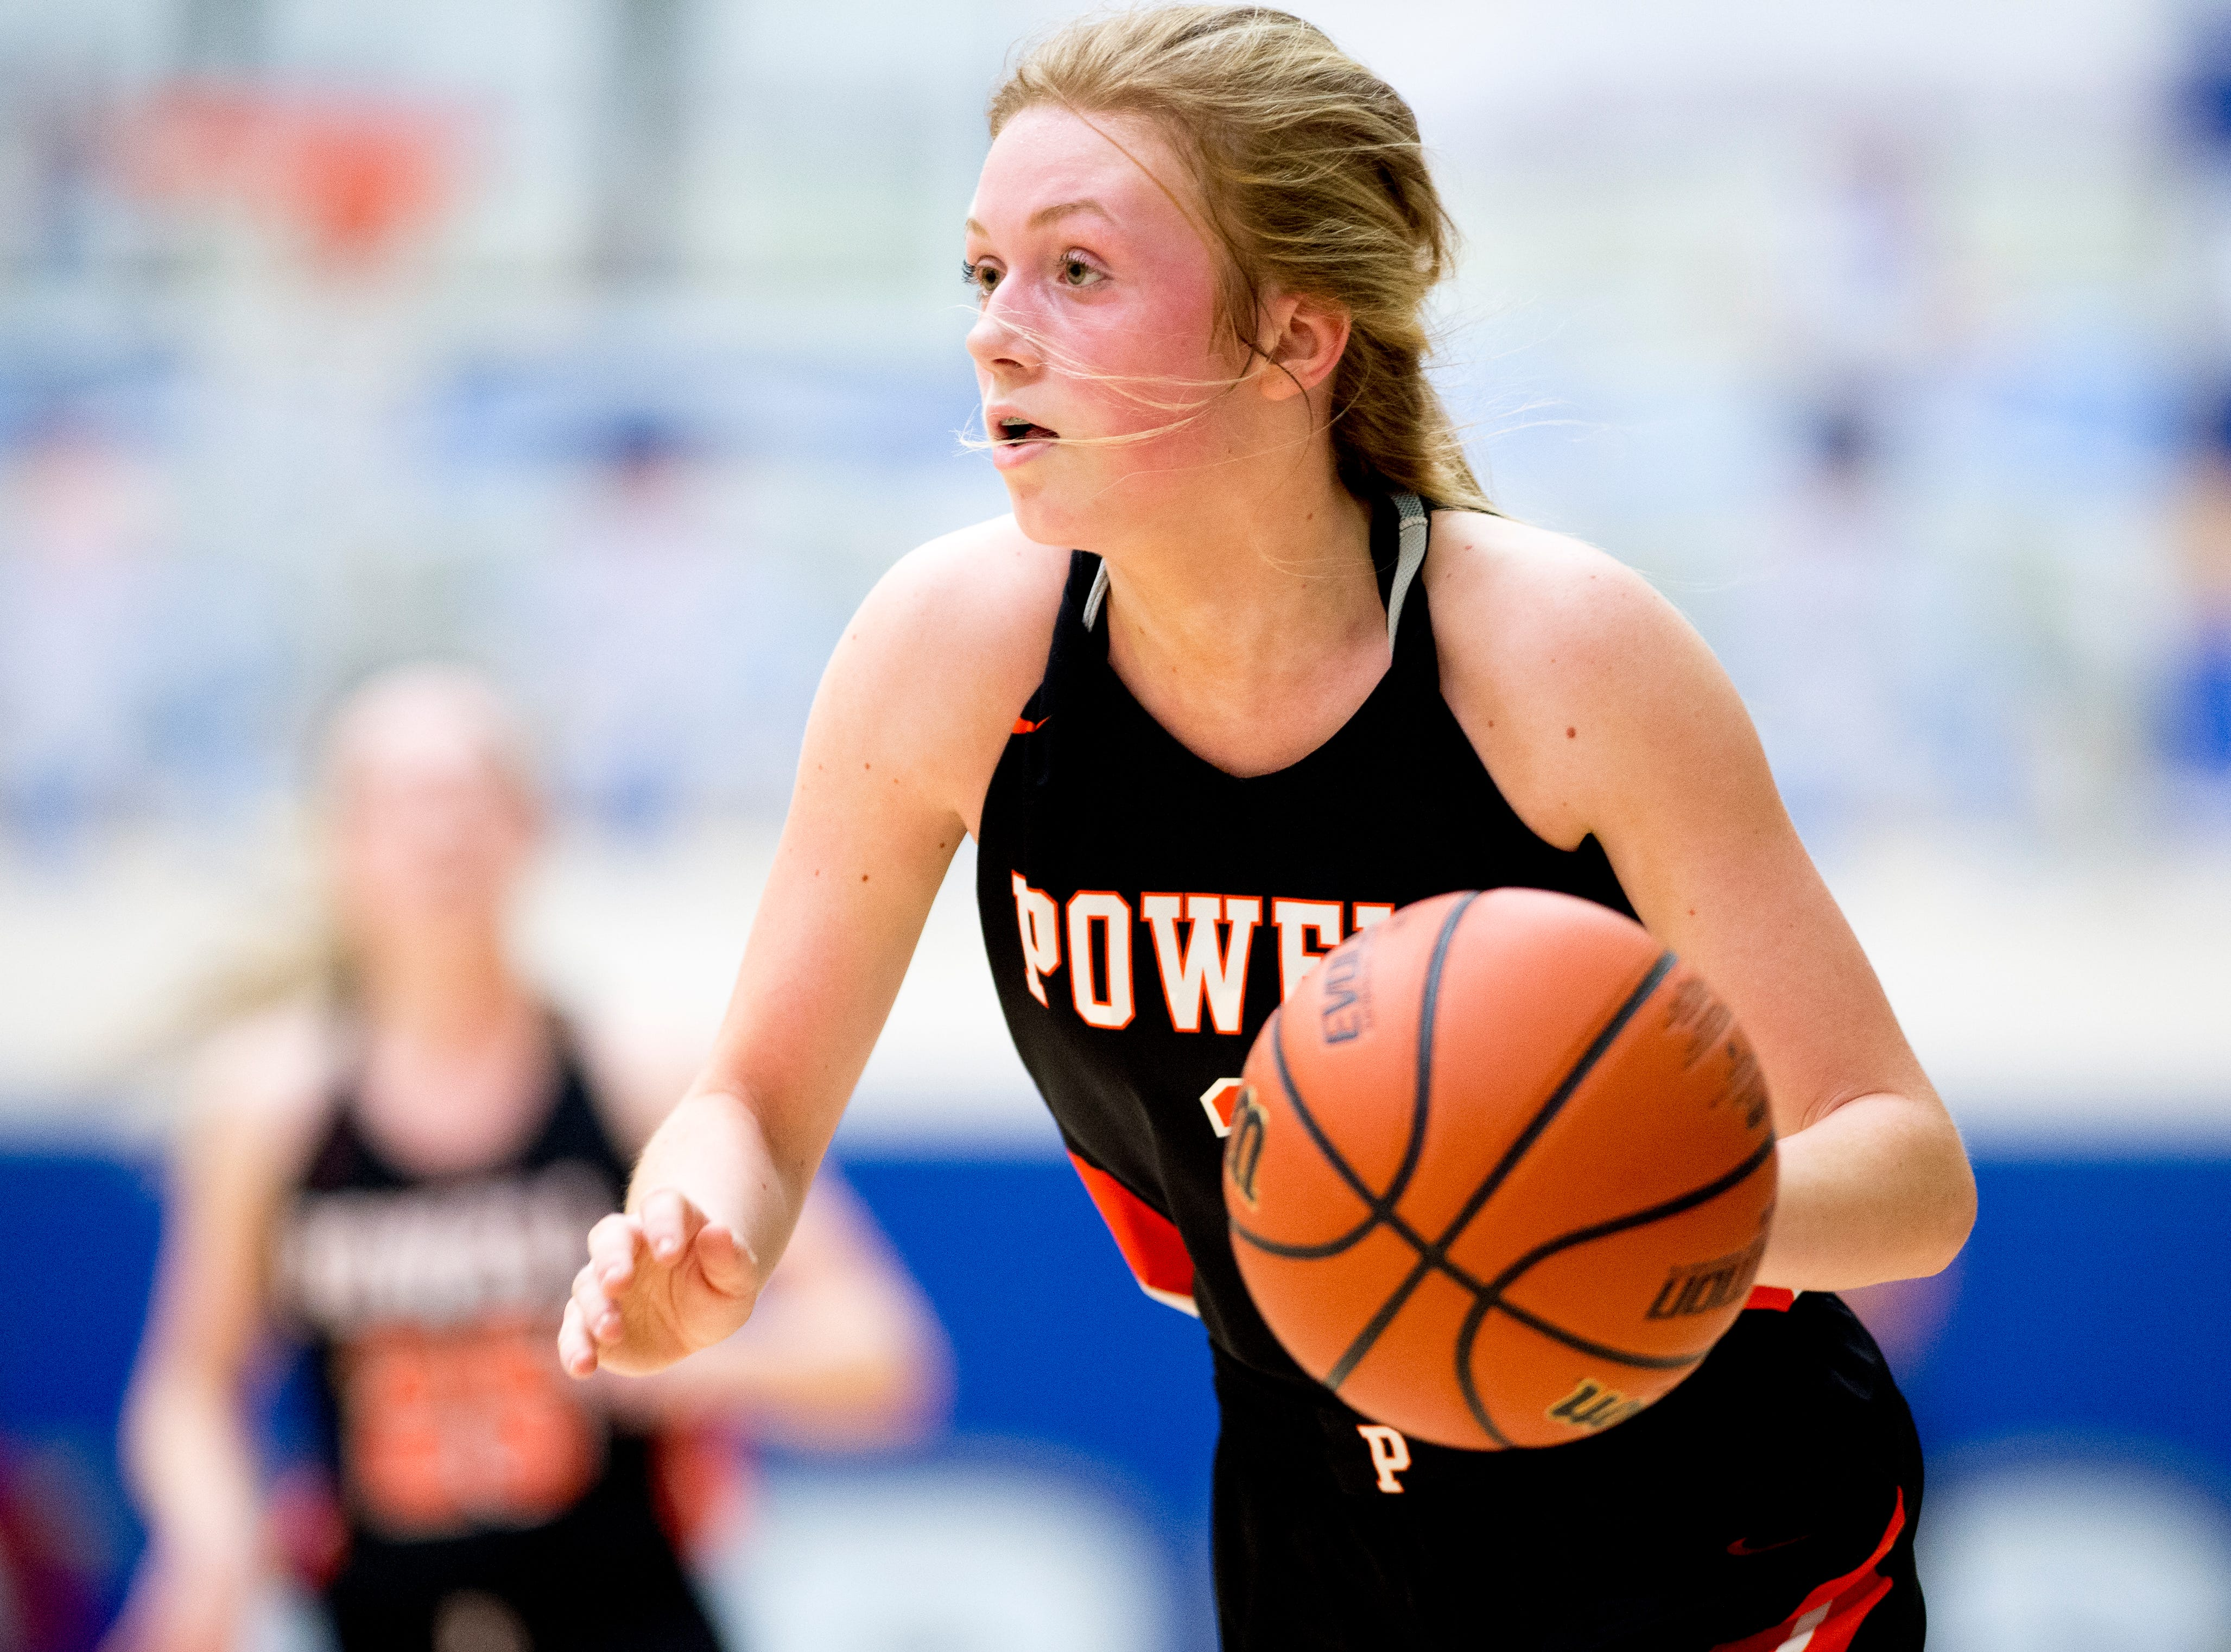 Powell's Reagan Trumm (3) dribbles down the court during a game between semifinal game between Oak Ridge and Powell at Karns High School in Knoxville, Tennessee on Saturday, February 16, 2019.